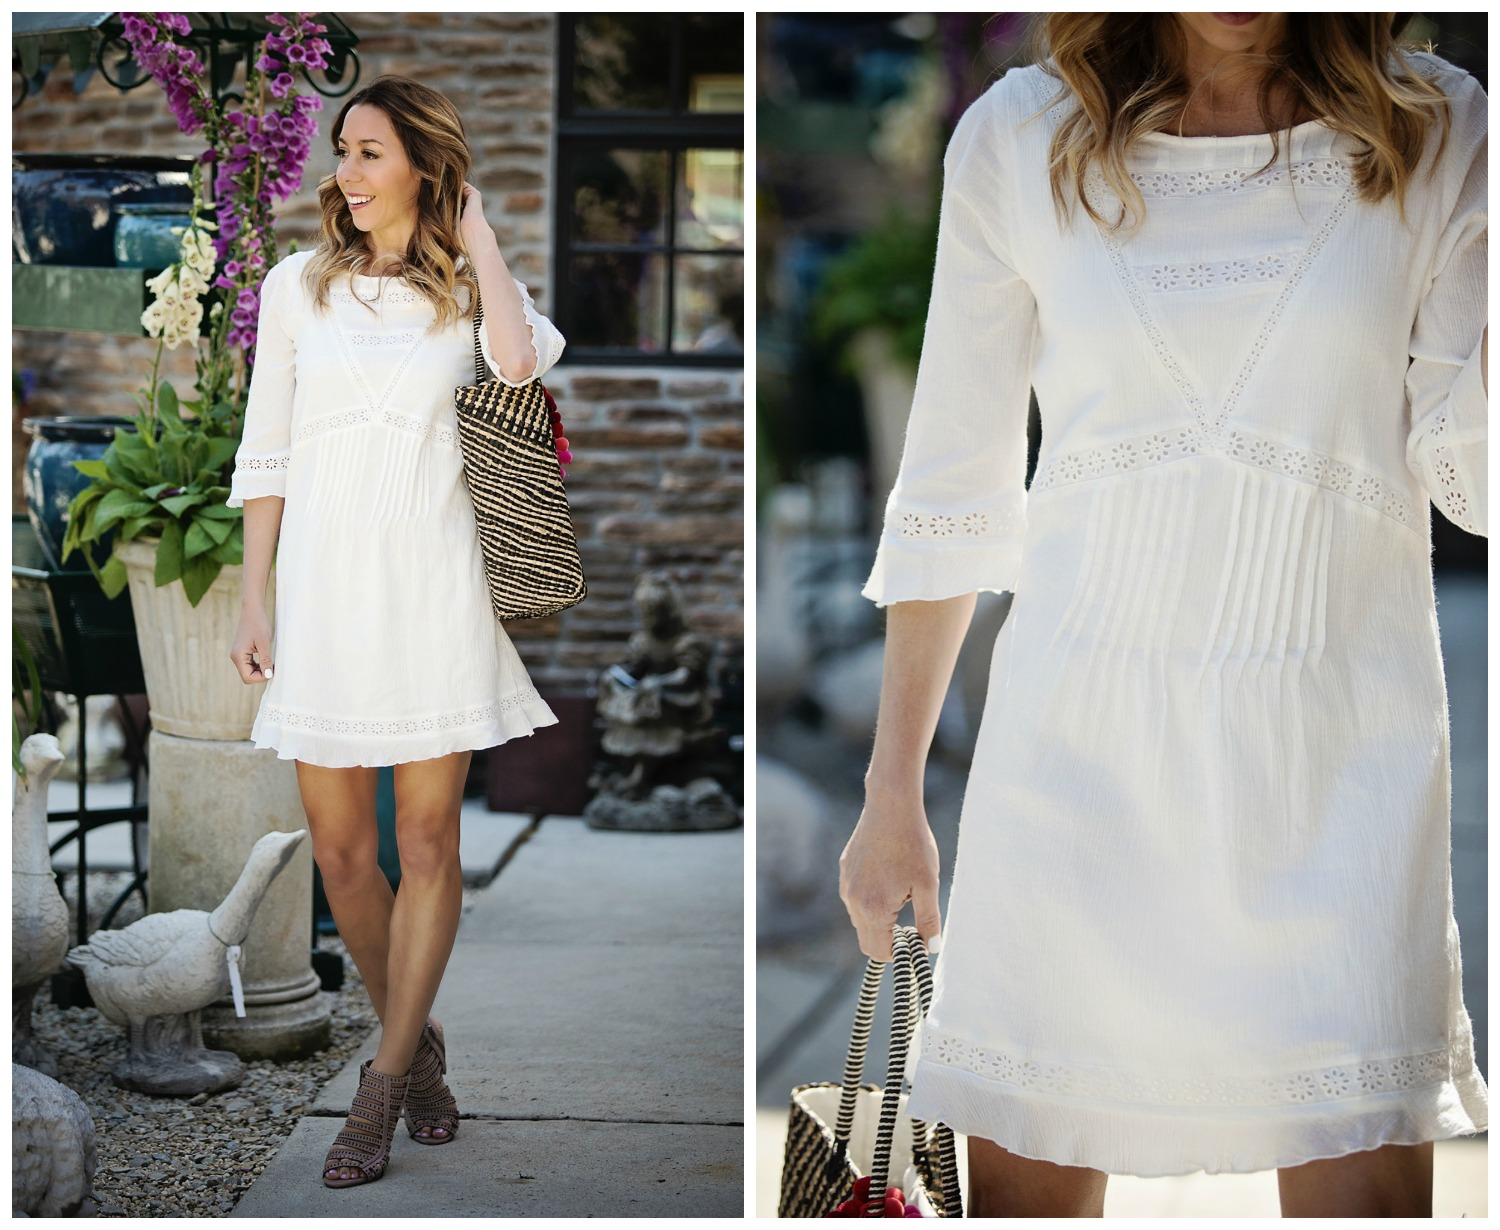 The Motherchic wearing white sanctuary dress